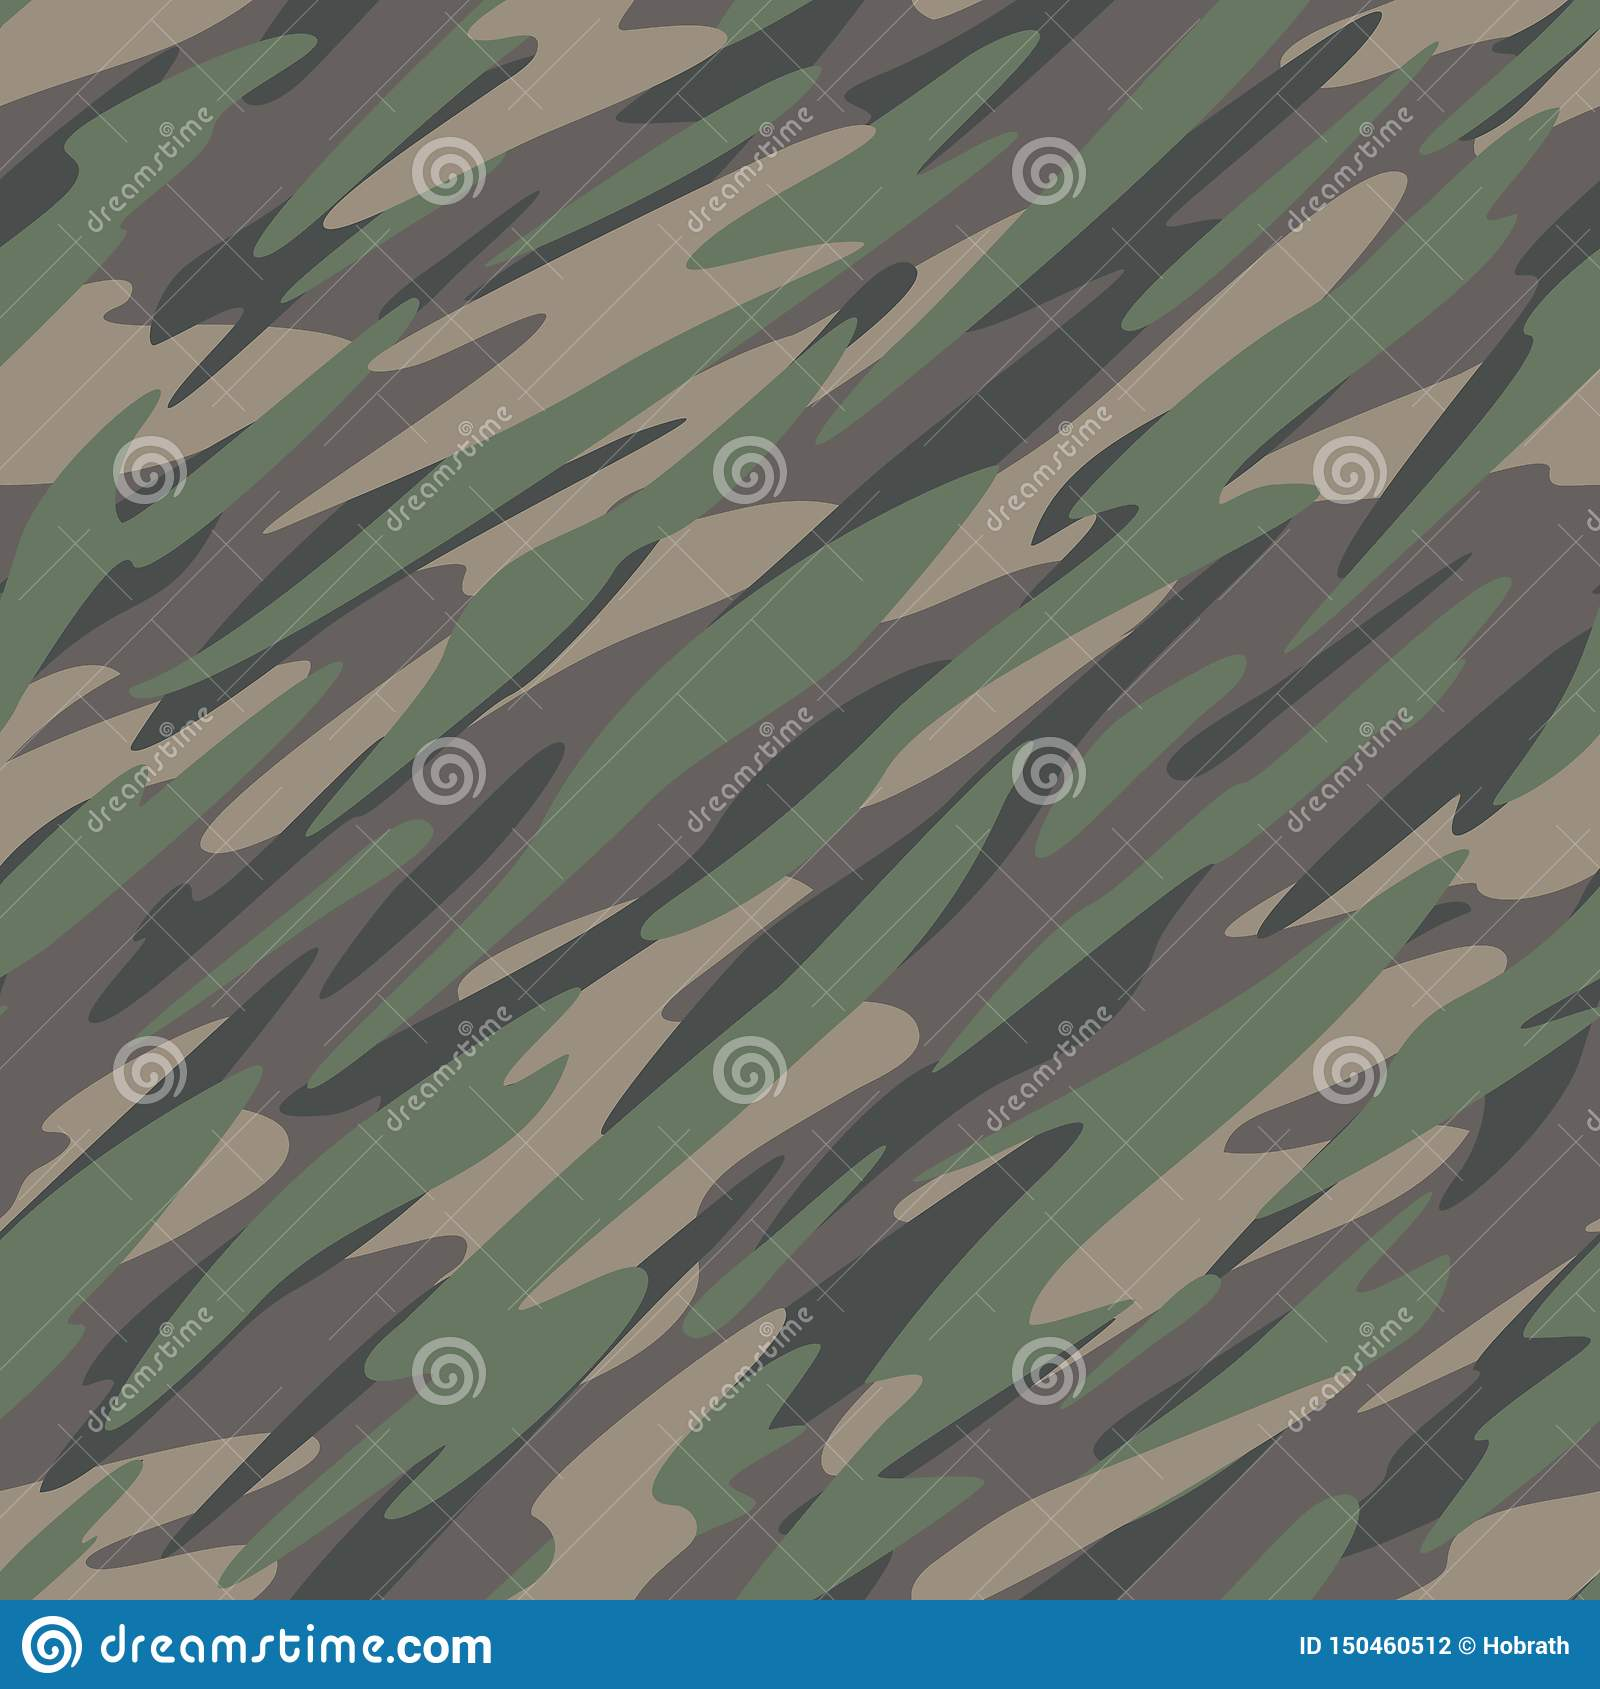 Forest / Jungle Camouflage Abstract Seamless Repeating Pattern Vector Illustration